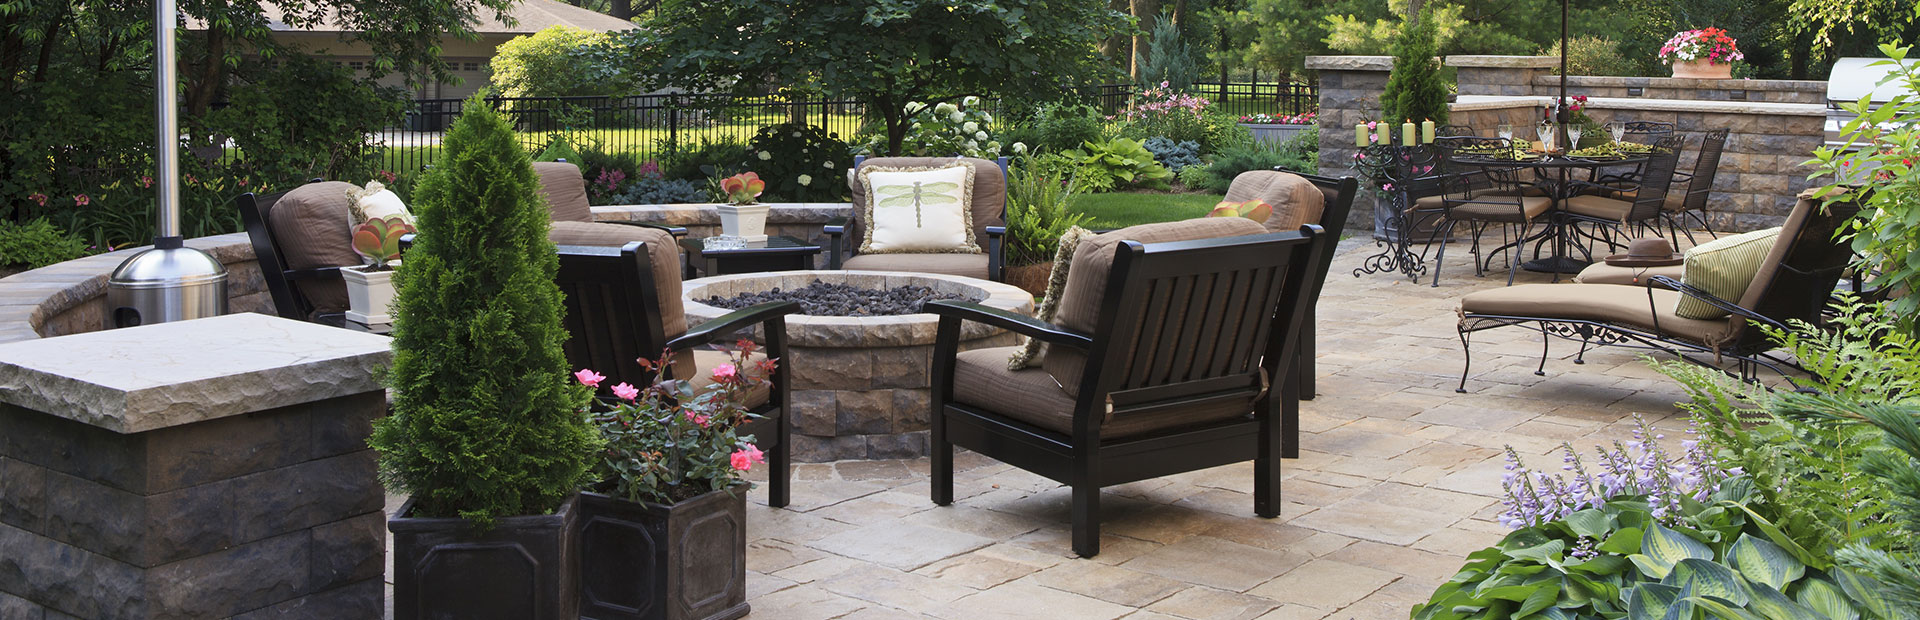 http://derstinelandscaping.com/wp-content/uploads/2019/08/patio-wall-barbecue-slider.jpg